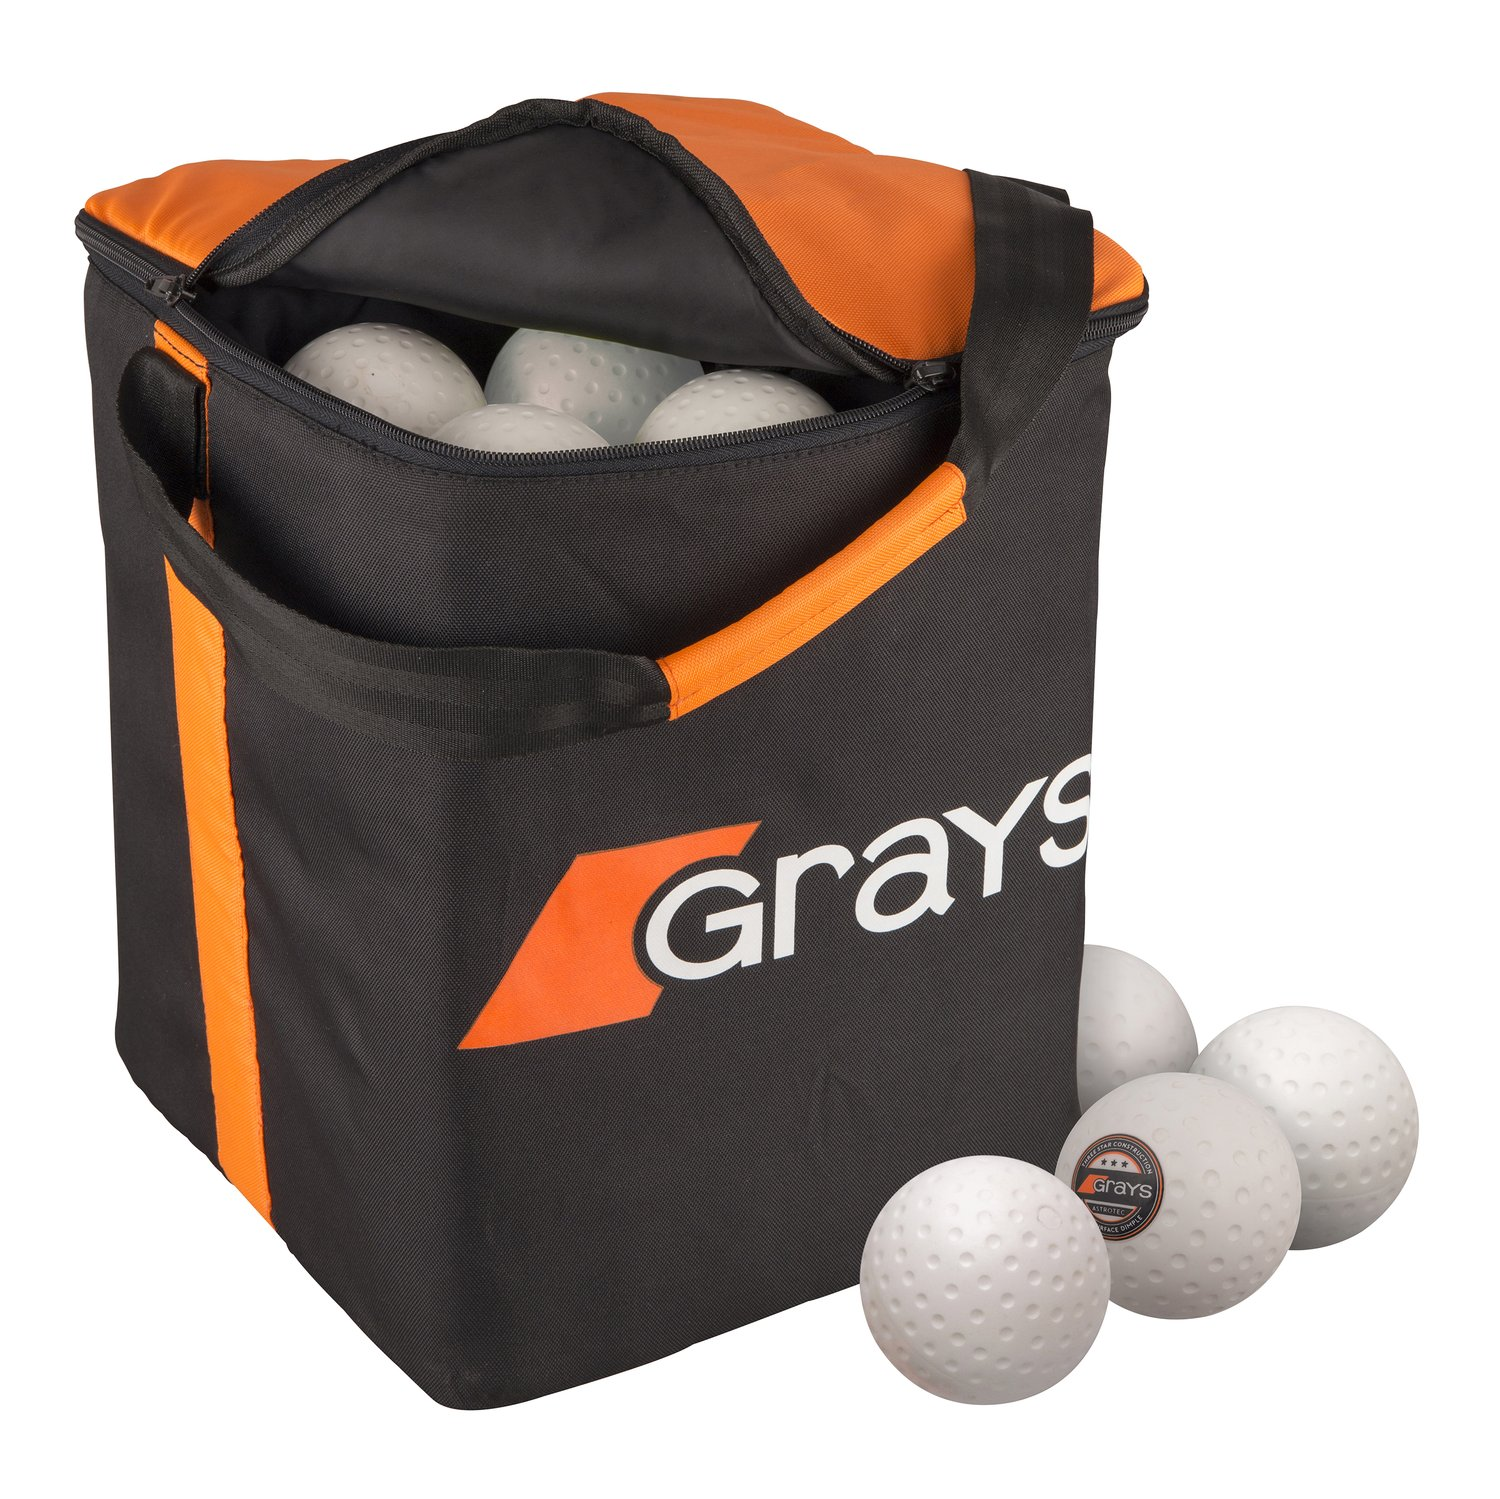 Grays 60 Ball Set